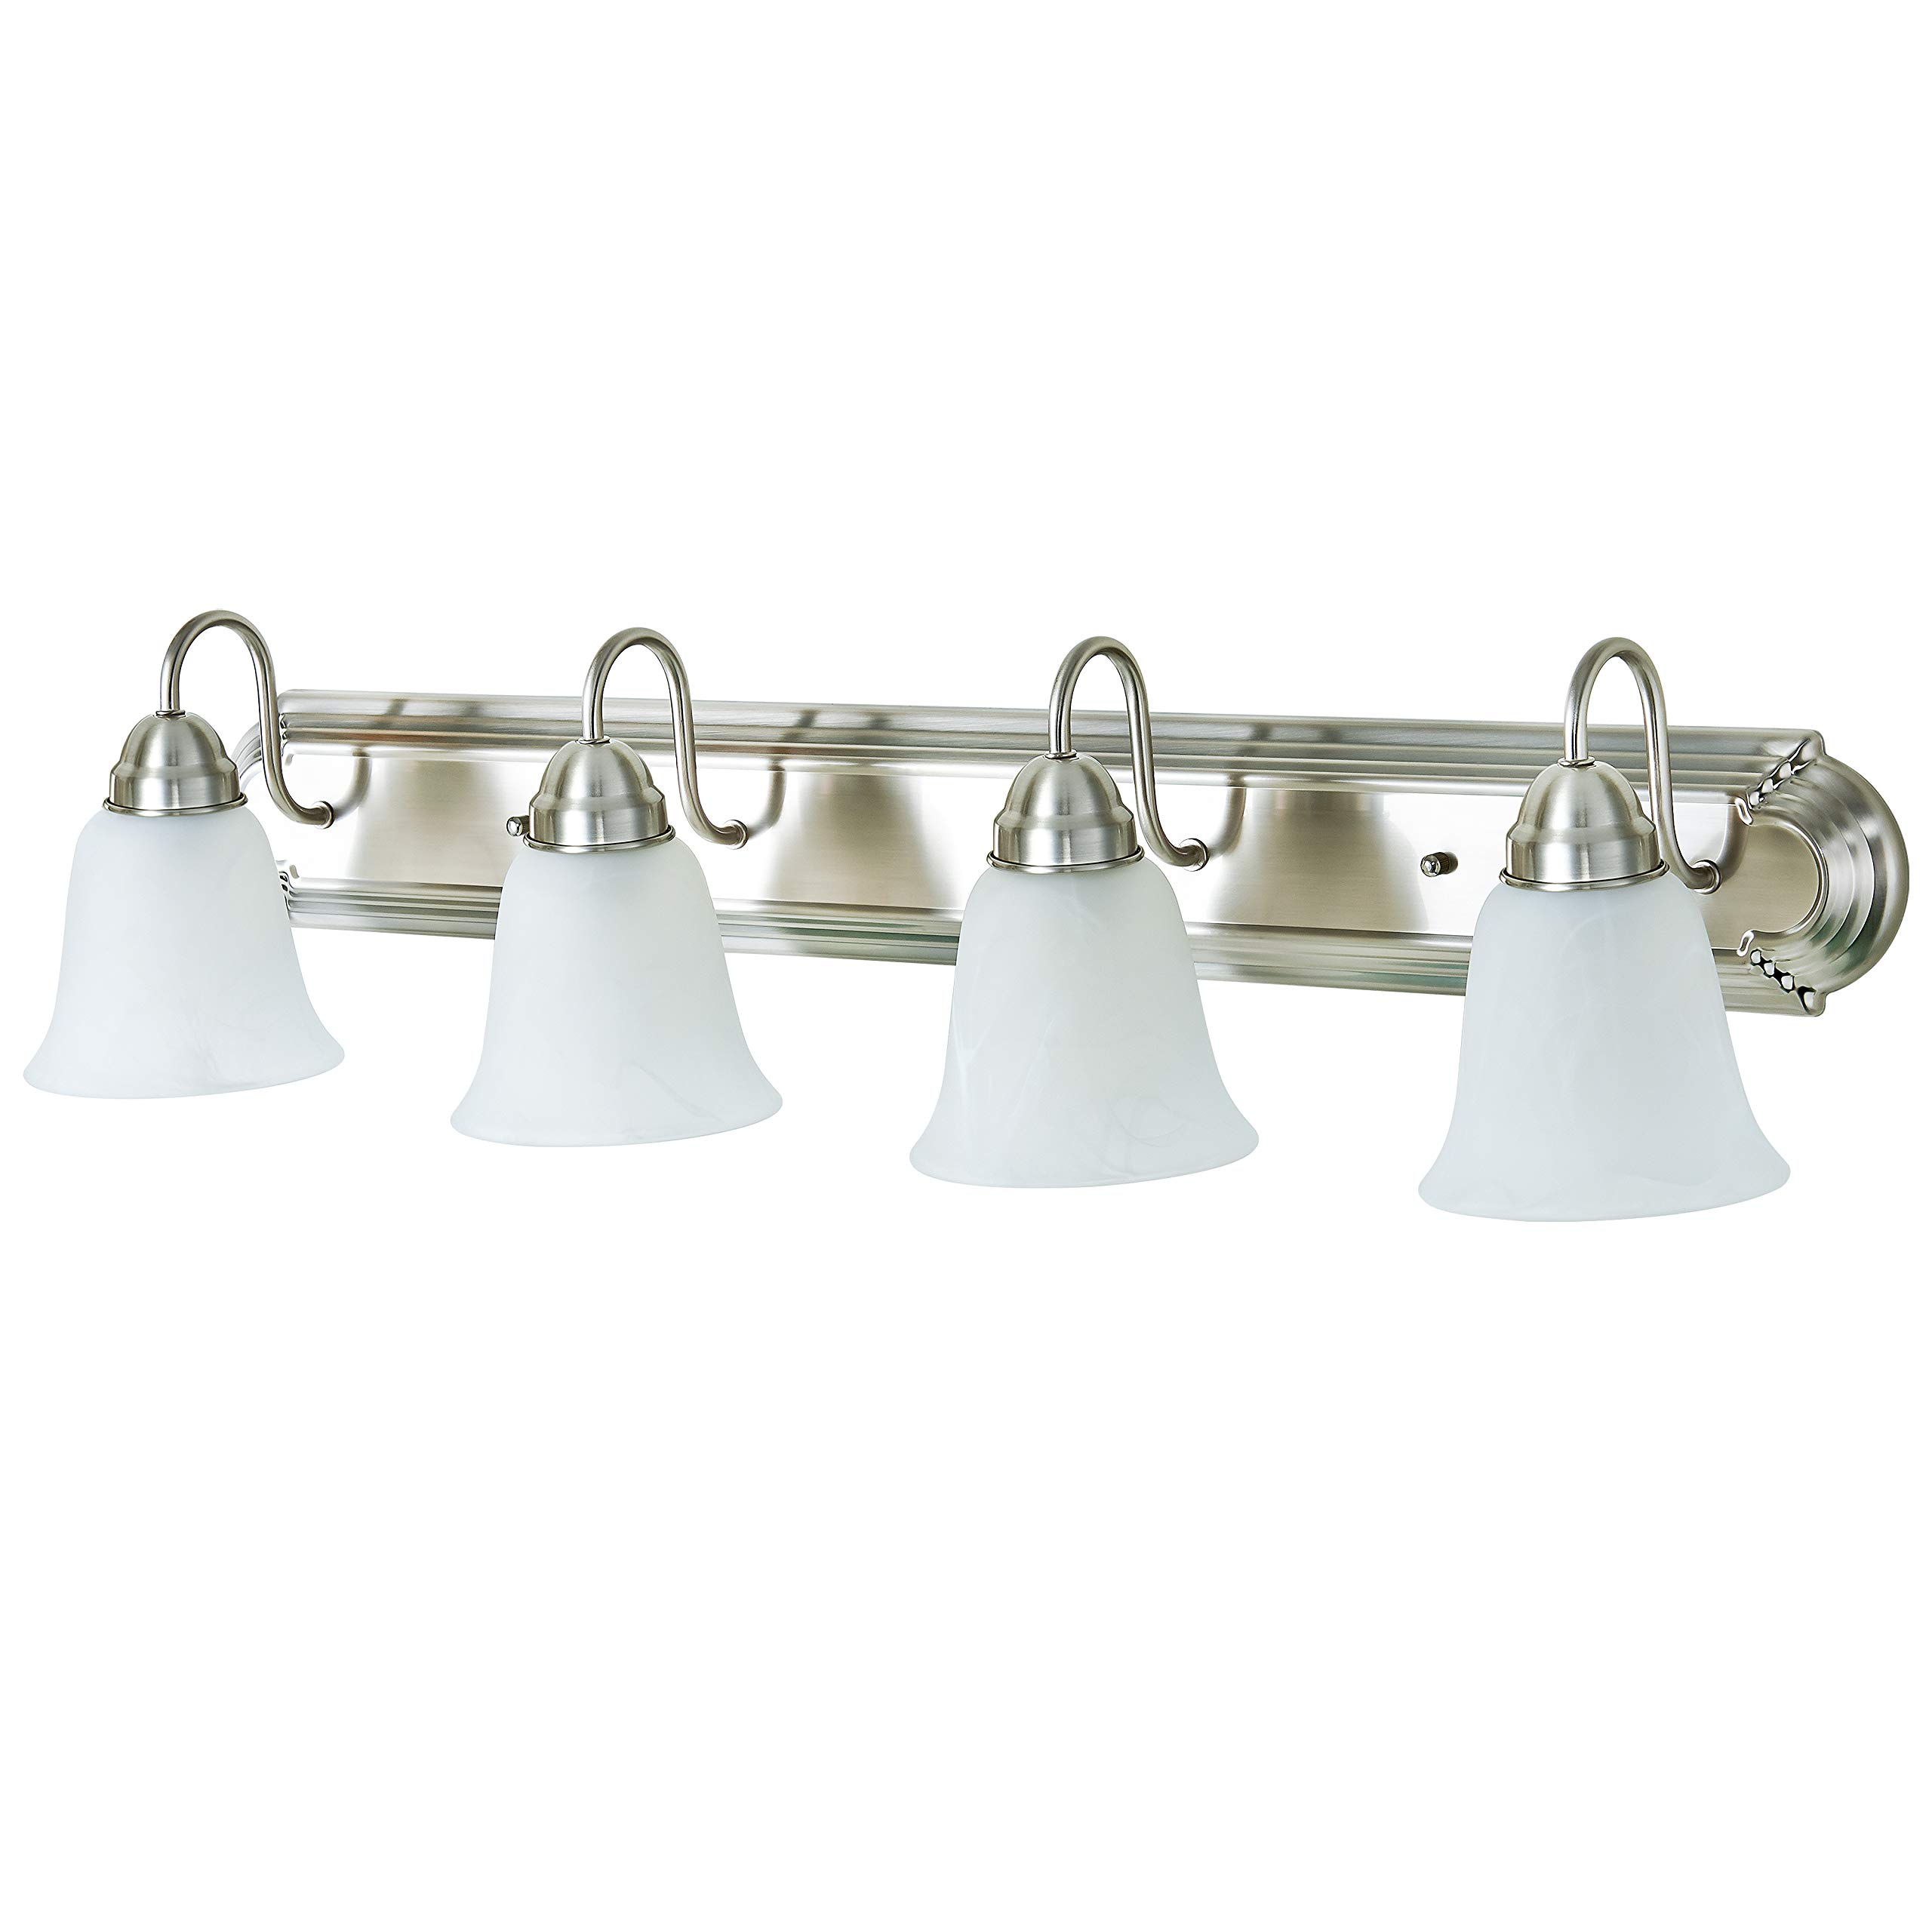 Kingbrite 4 Bulb E26 Vanity Light Fixture For Bathroom Brushed Nickel Alabaster Ebay